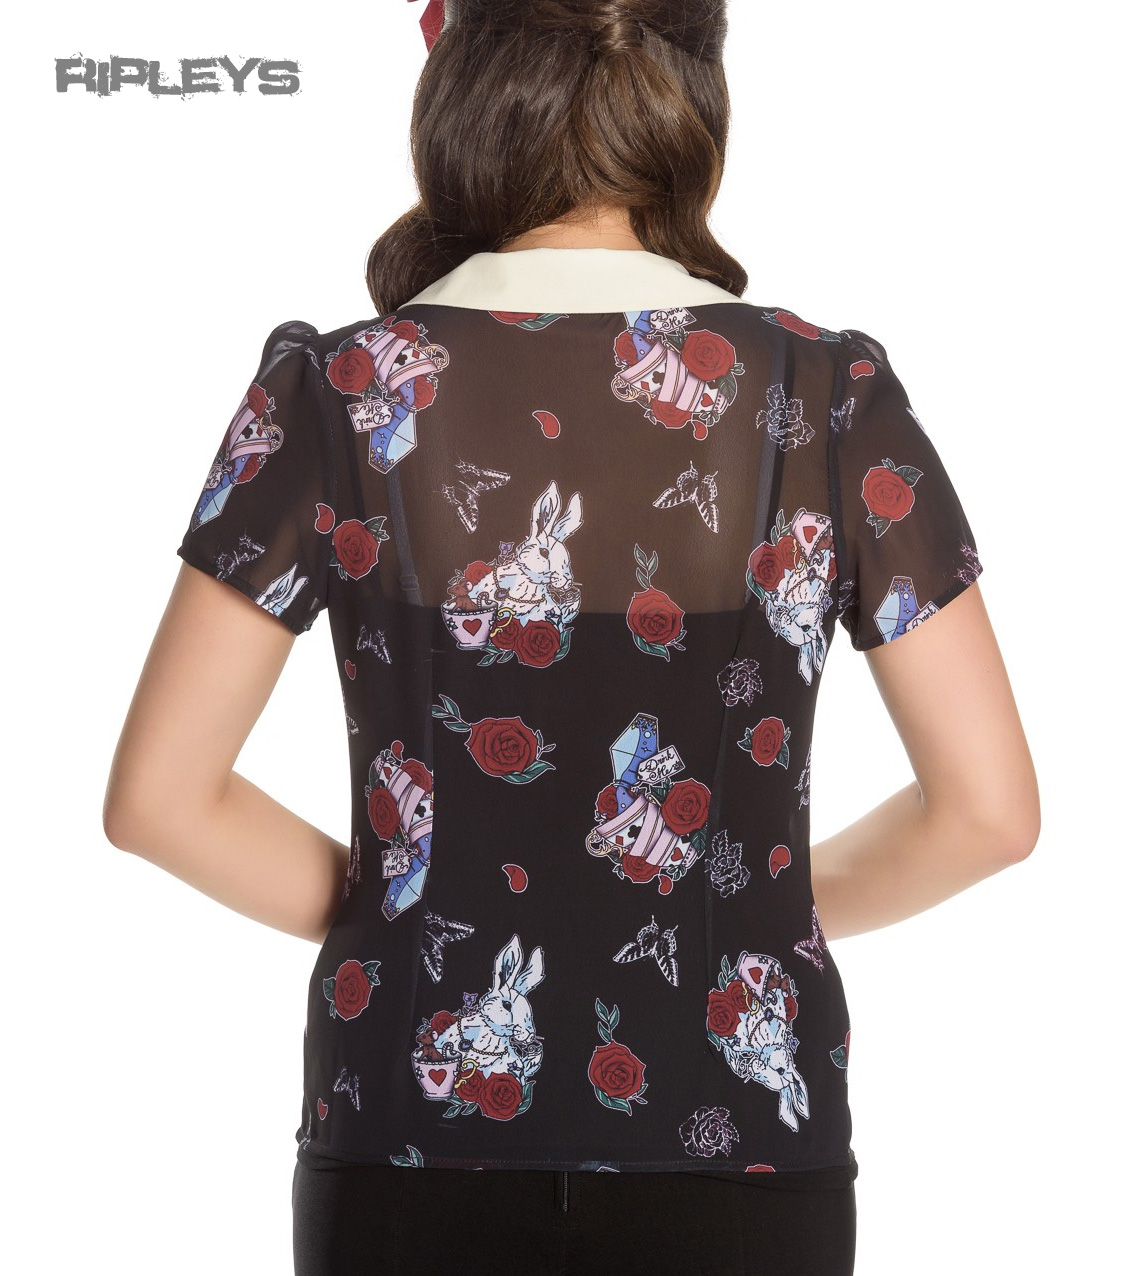 Hell-Bunny-Shirt-Top-Alice-in-Wonderland-Blouse-DRINK-ME-Roses-All-Sizes thumbnail 8